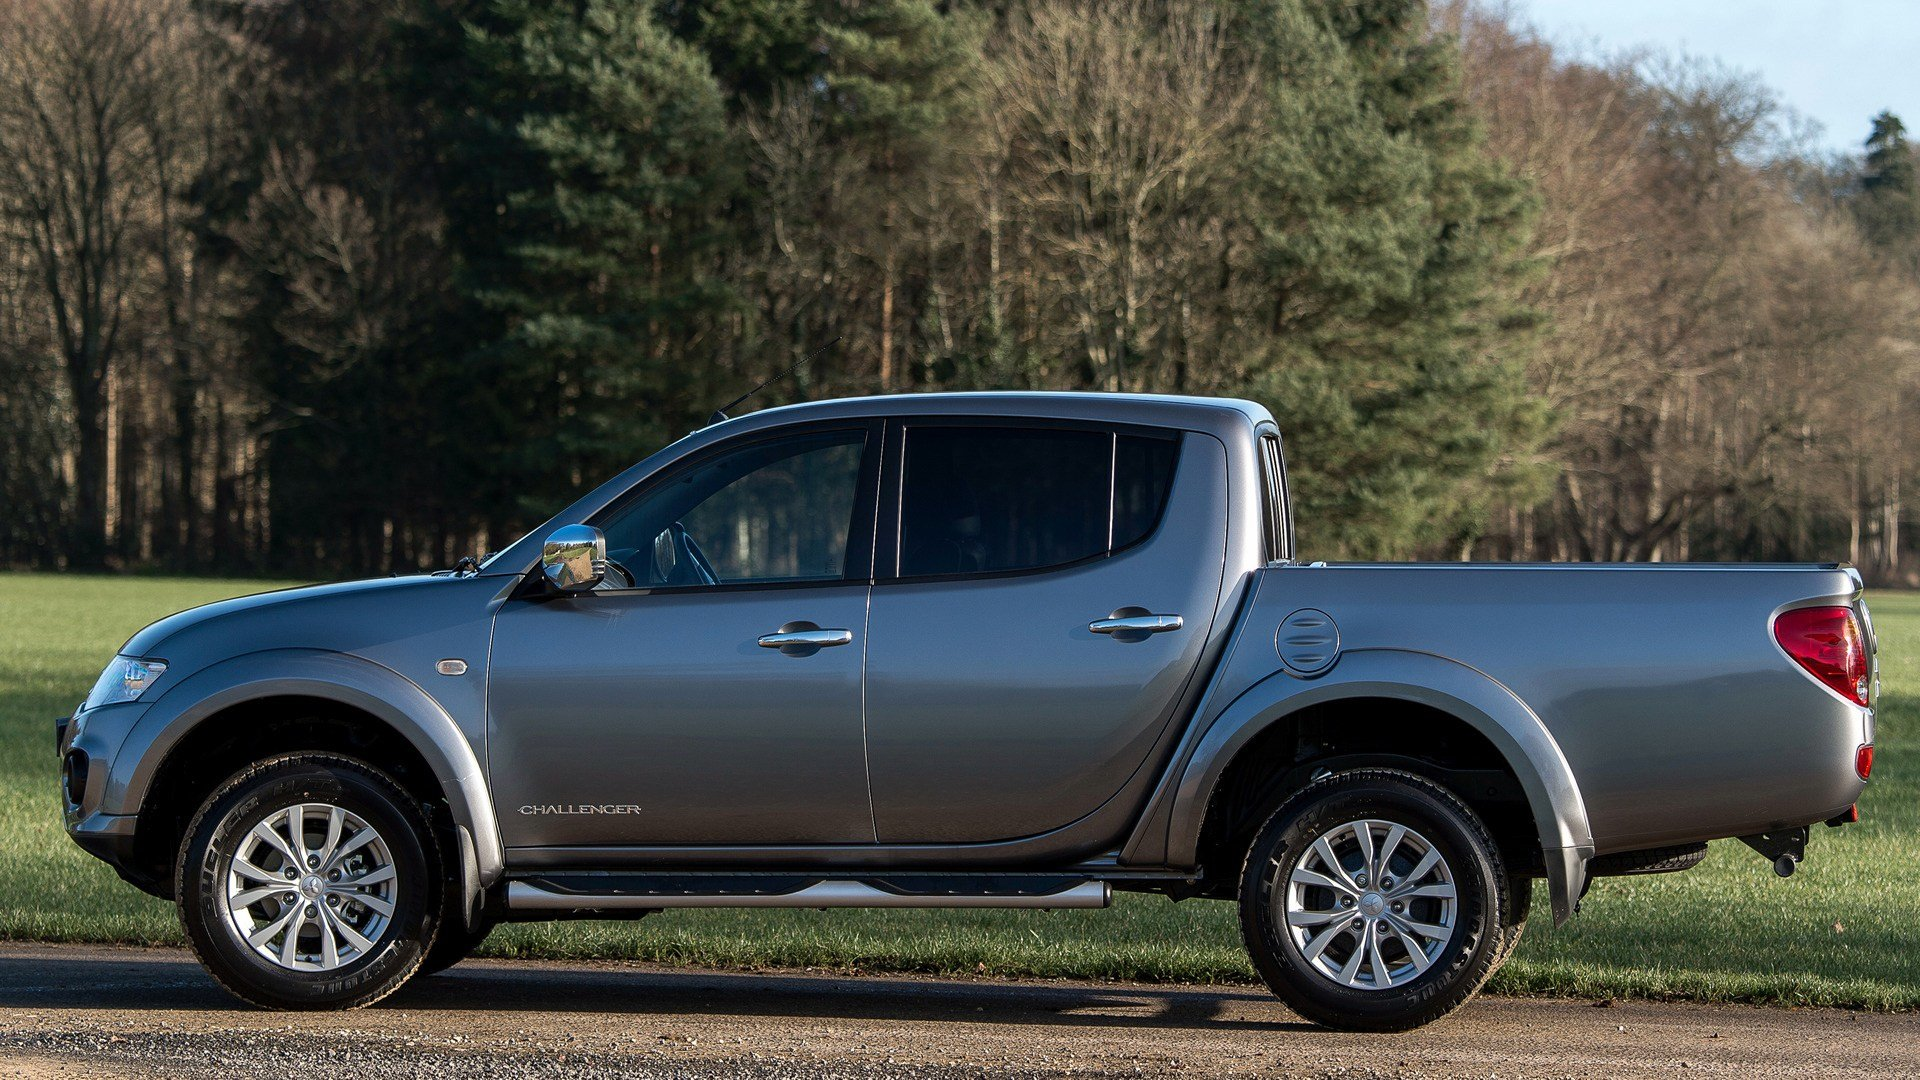 Latest 2015 Mitsubishi L200 Challenger Wallpapers And Hd Images Free Download